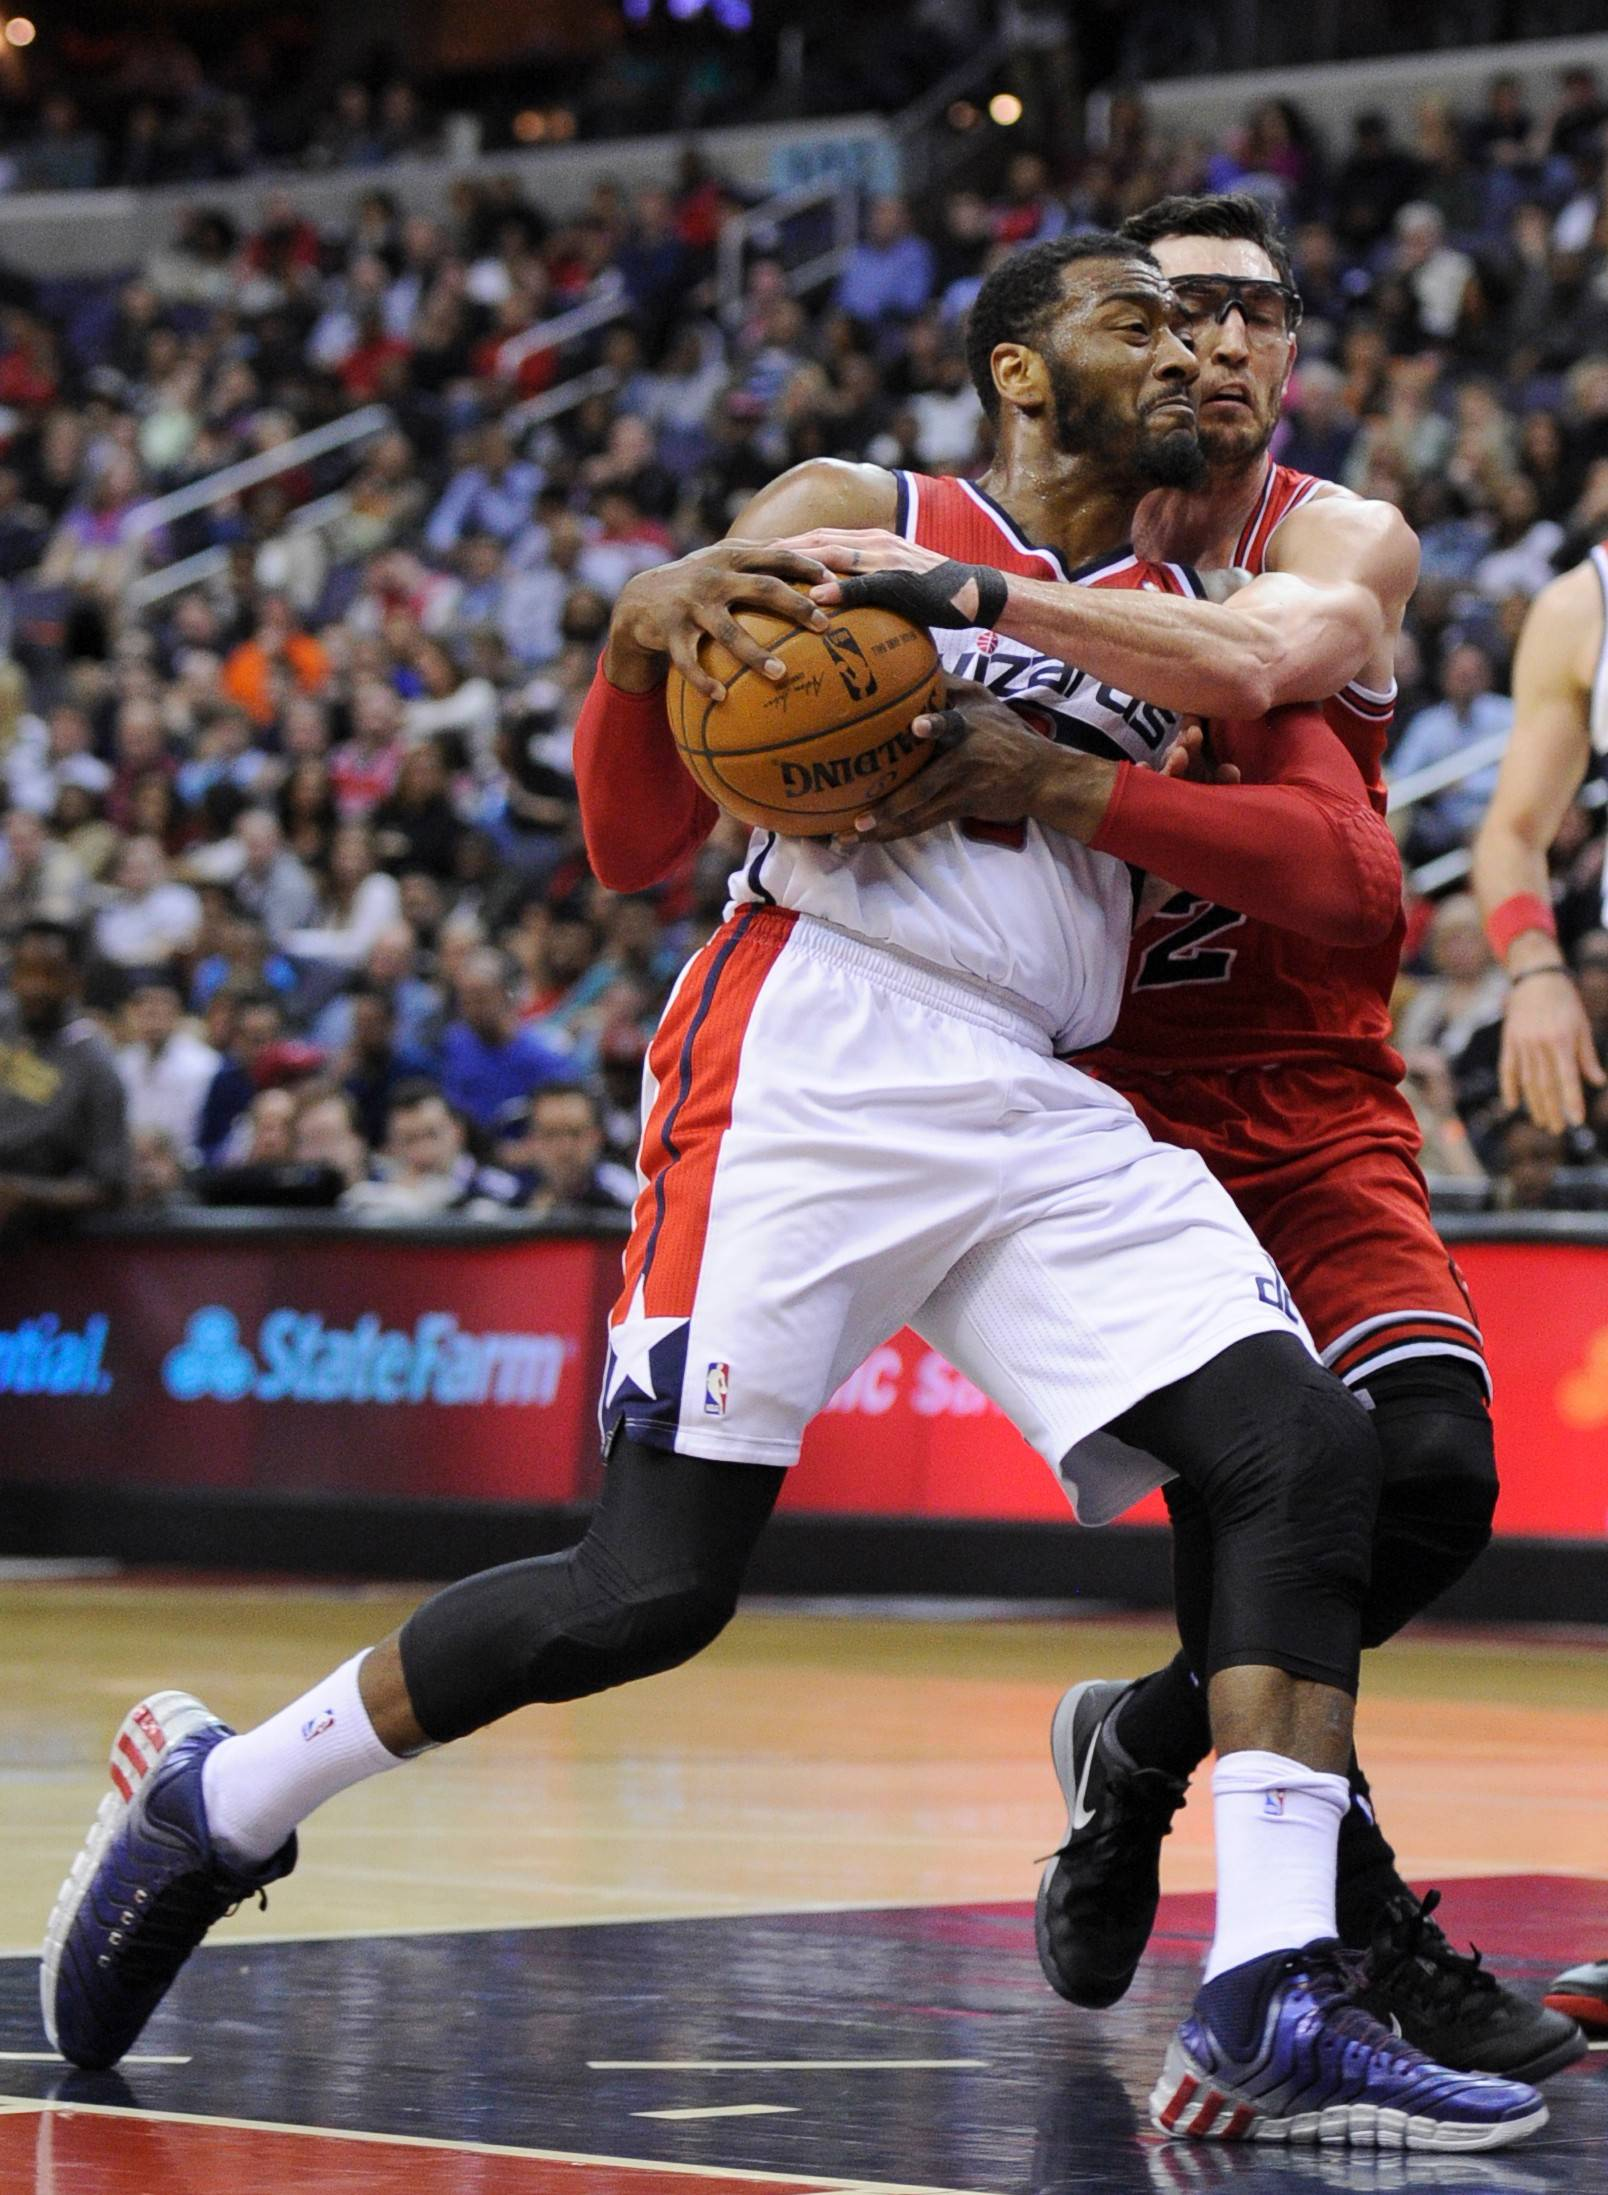 Chicago Bulls guard Kirk Hinrich, right, grabs Washington Wizards guard John Wall during the second half of an NBA basketball game, Saturday, April 5, 2014, in Washington. Hinrich was called for a foul on the play. The Bulls won 96-78.